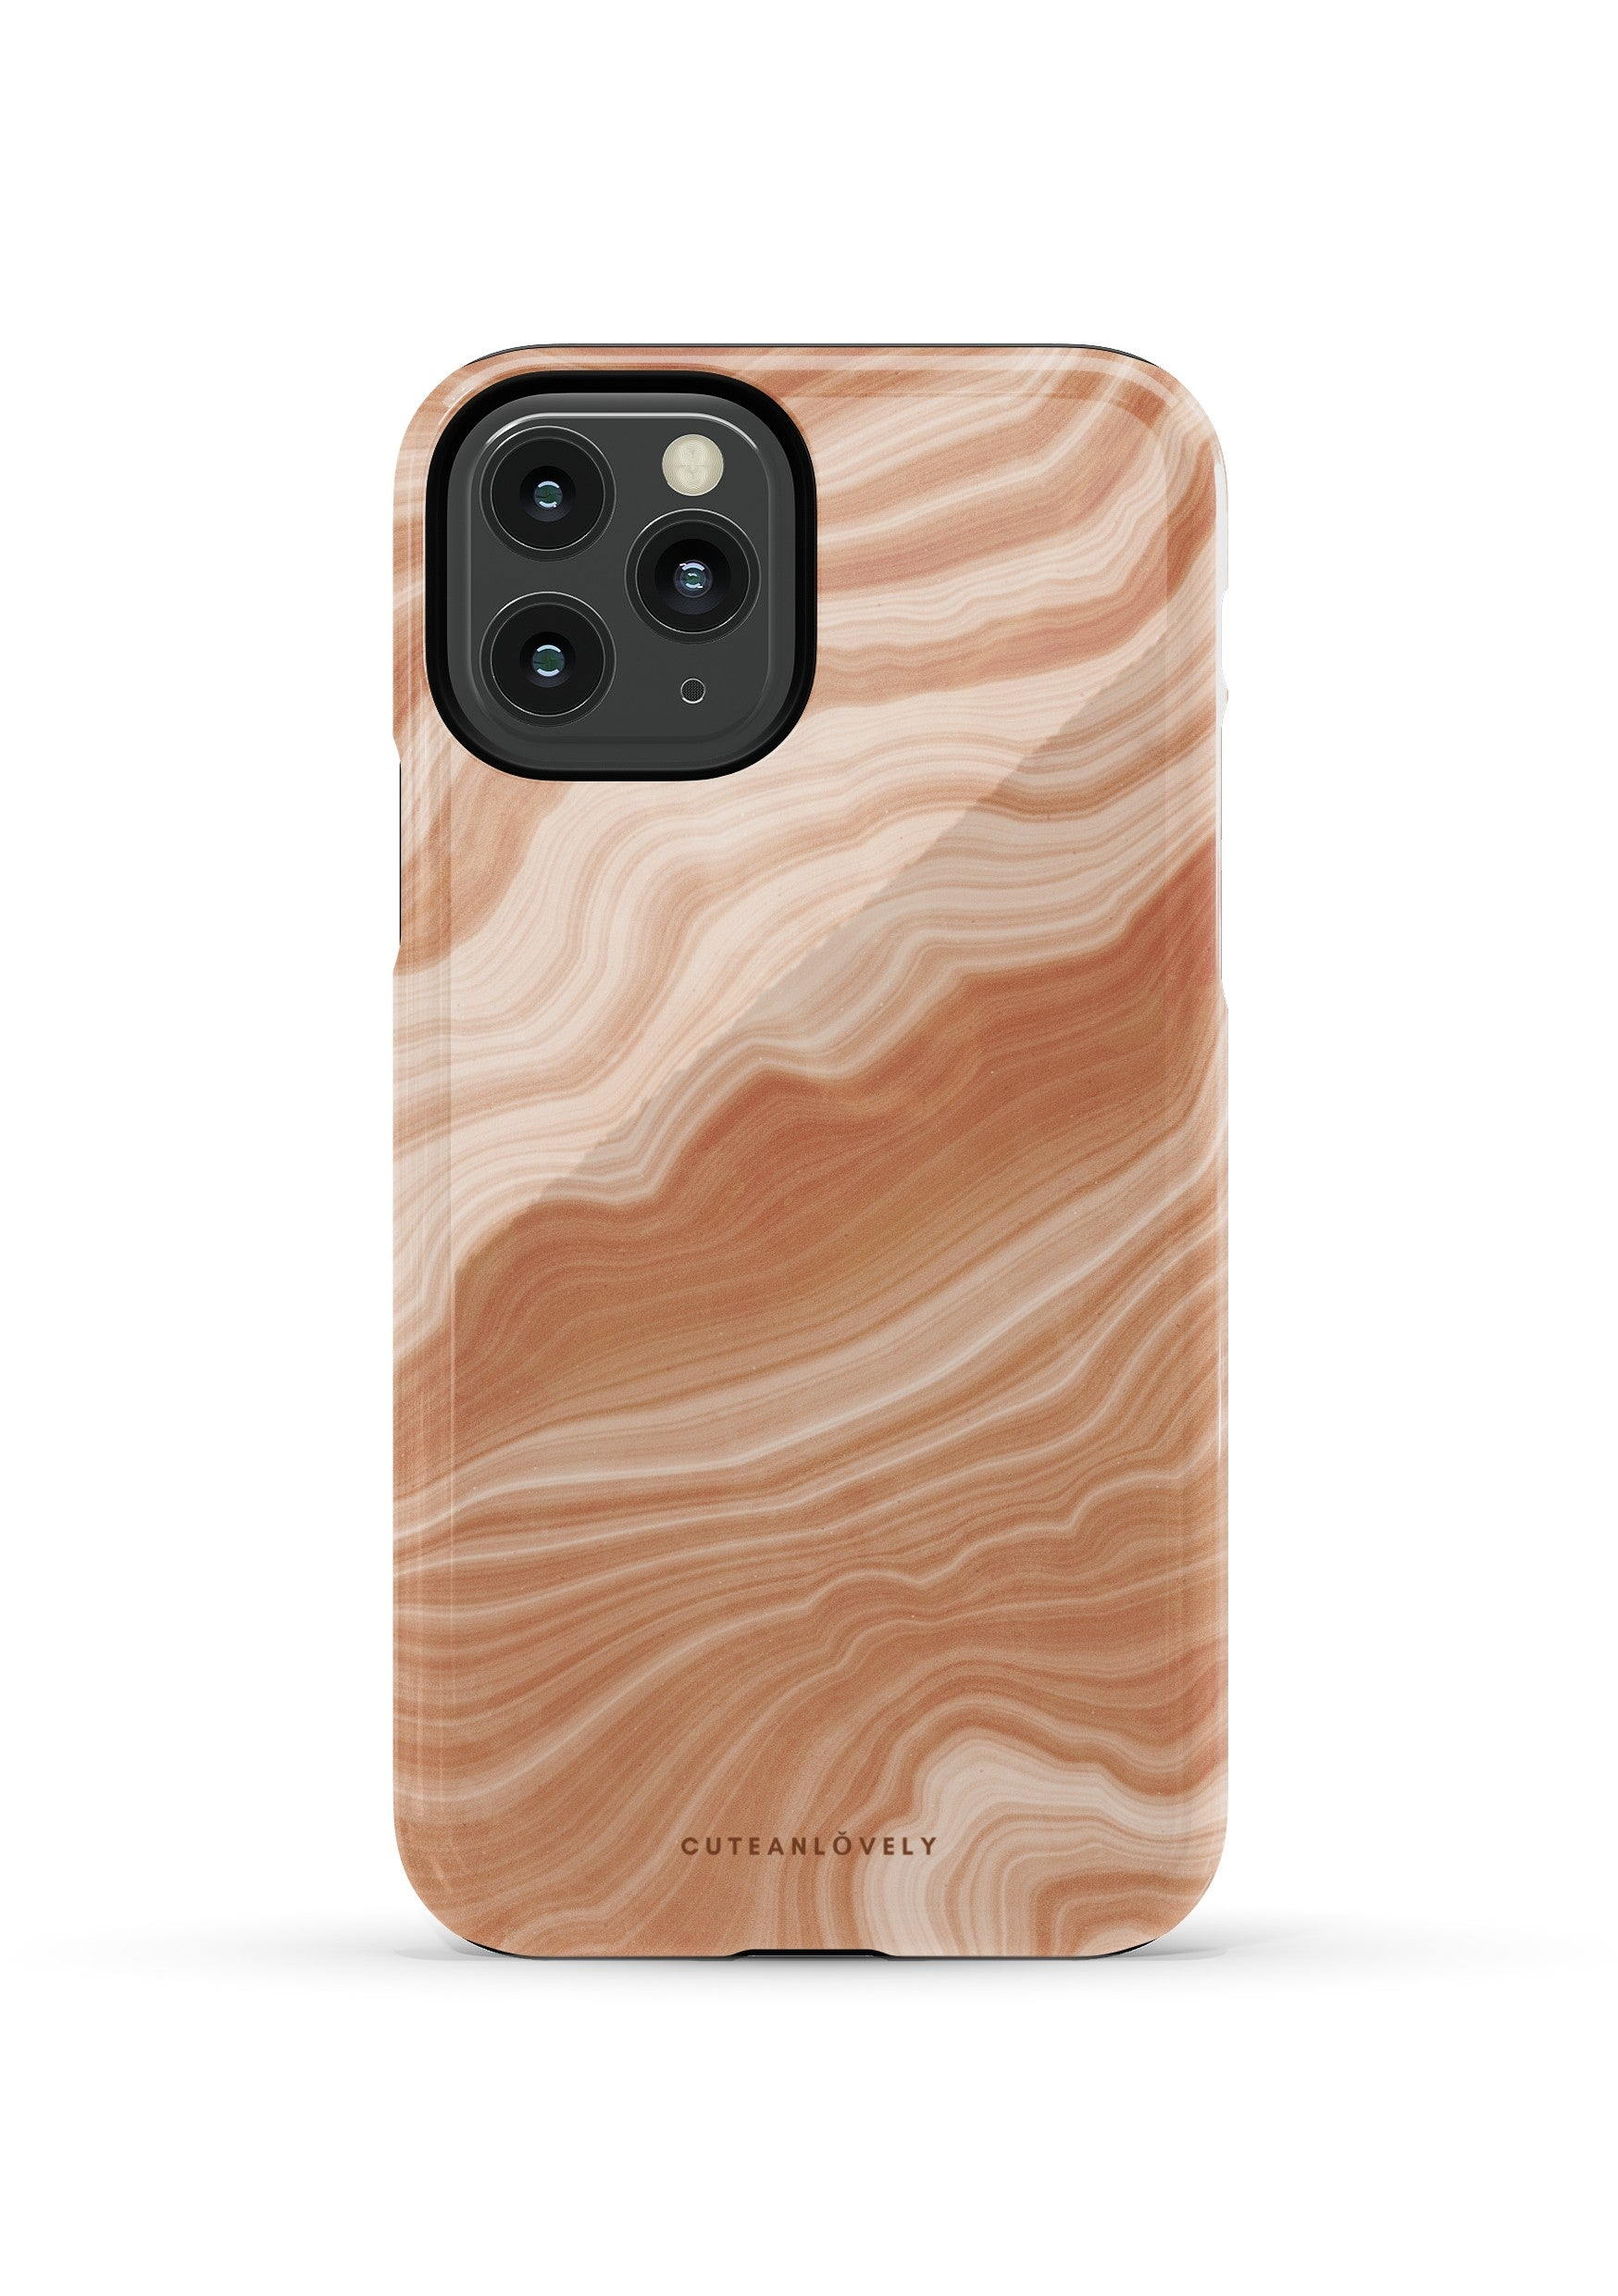 CUTEANLOVELY |Peach Sorbet Marble iPhone 11 Pro  Case